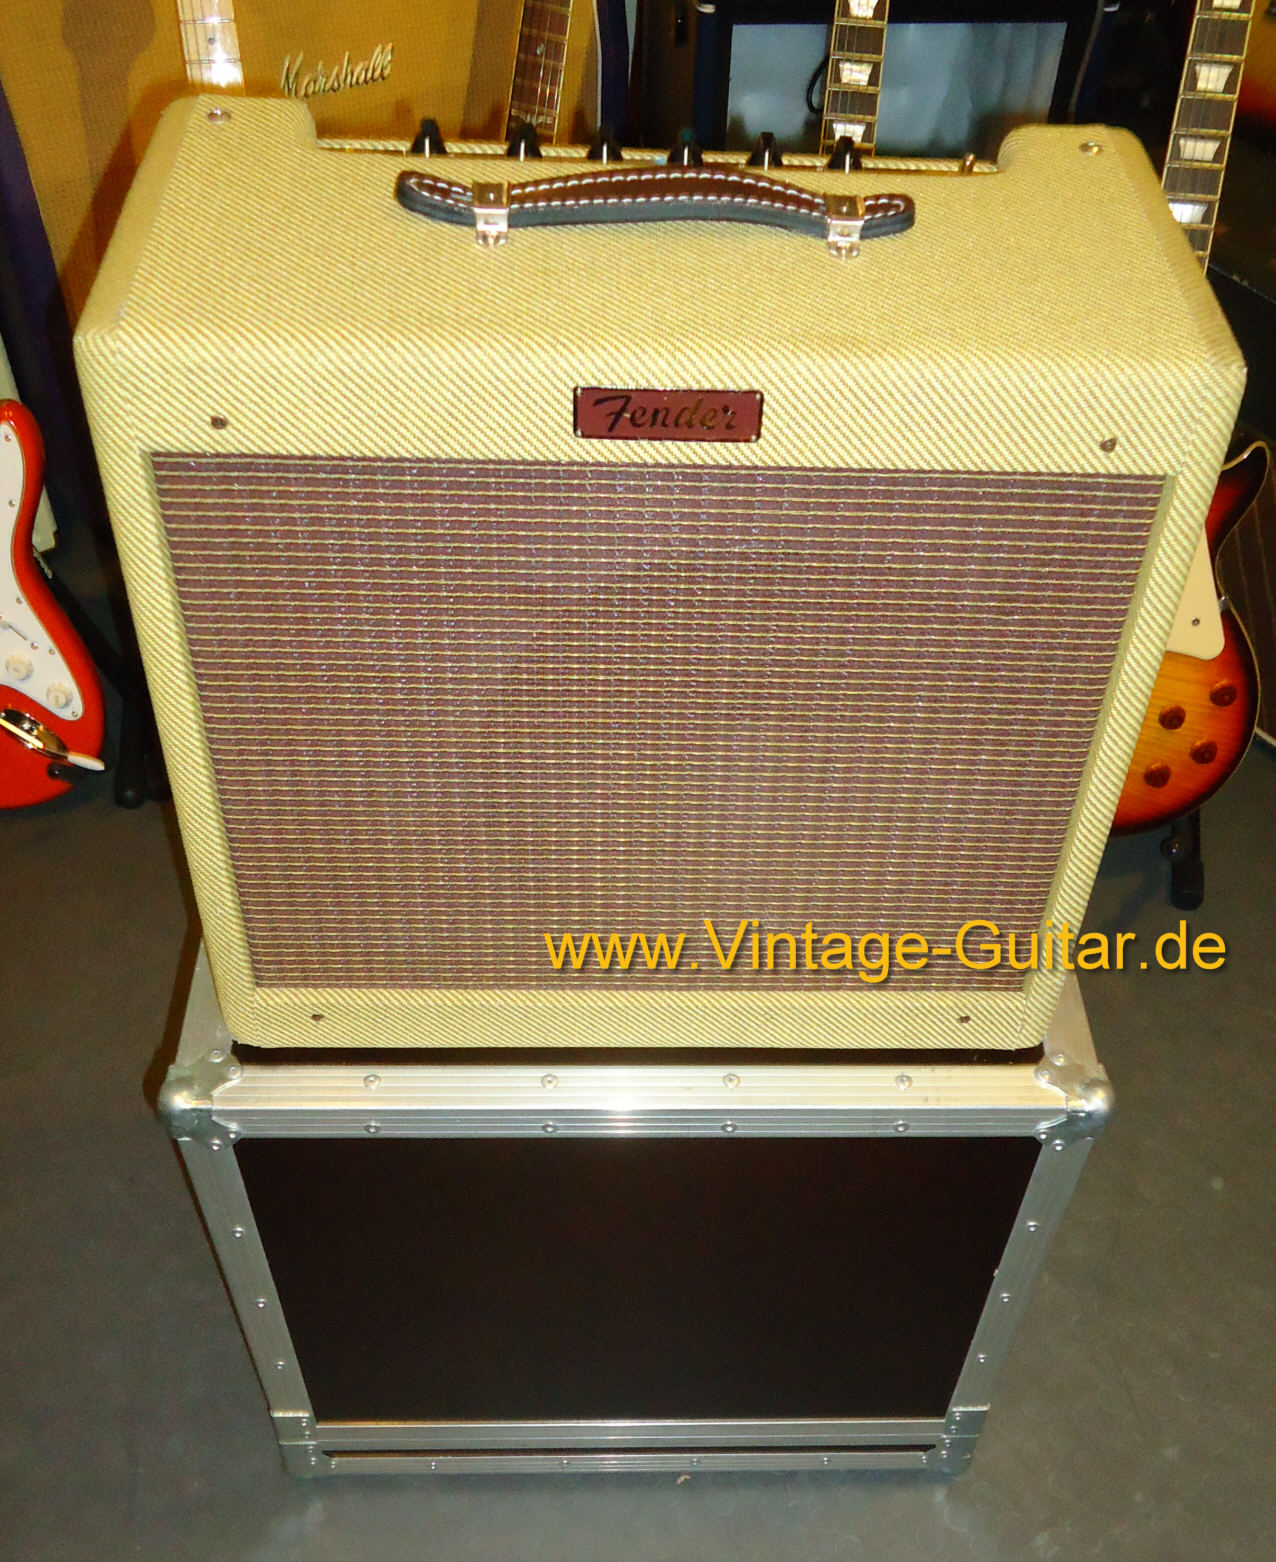 img/vintage/428/Fender Blues Junior 1995 Tweed a.jpg